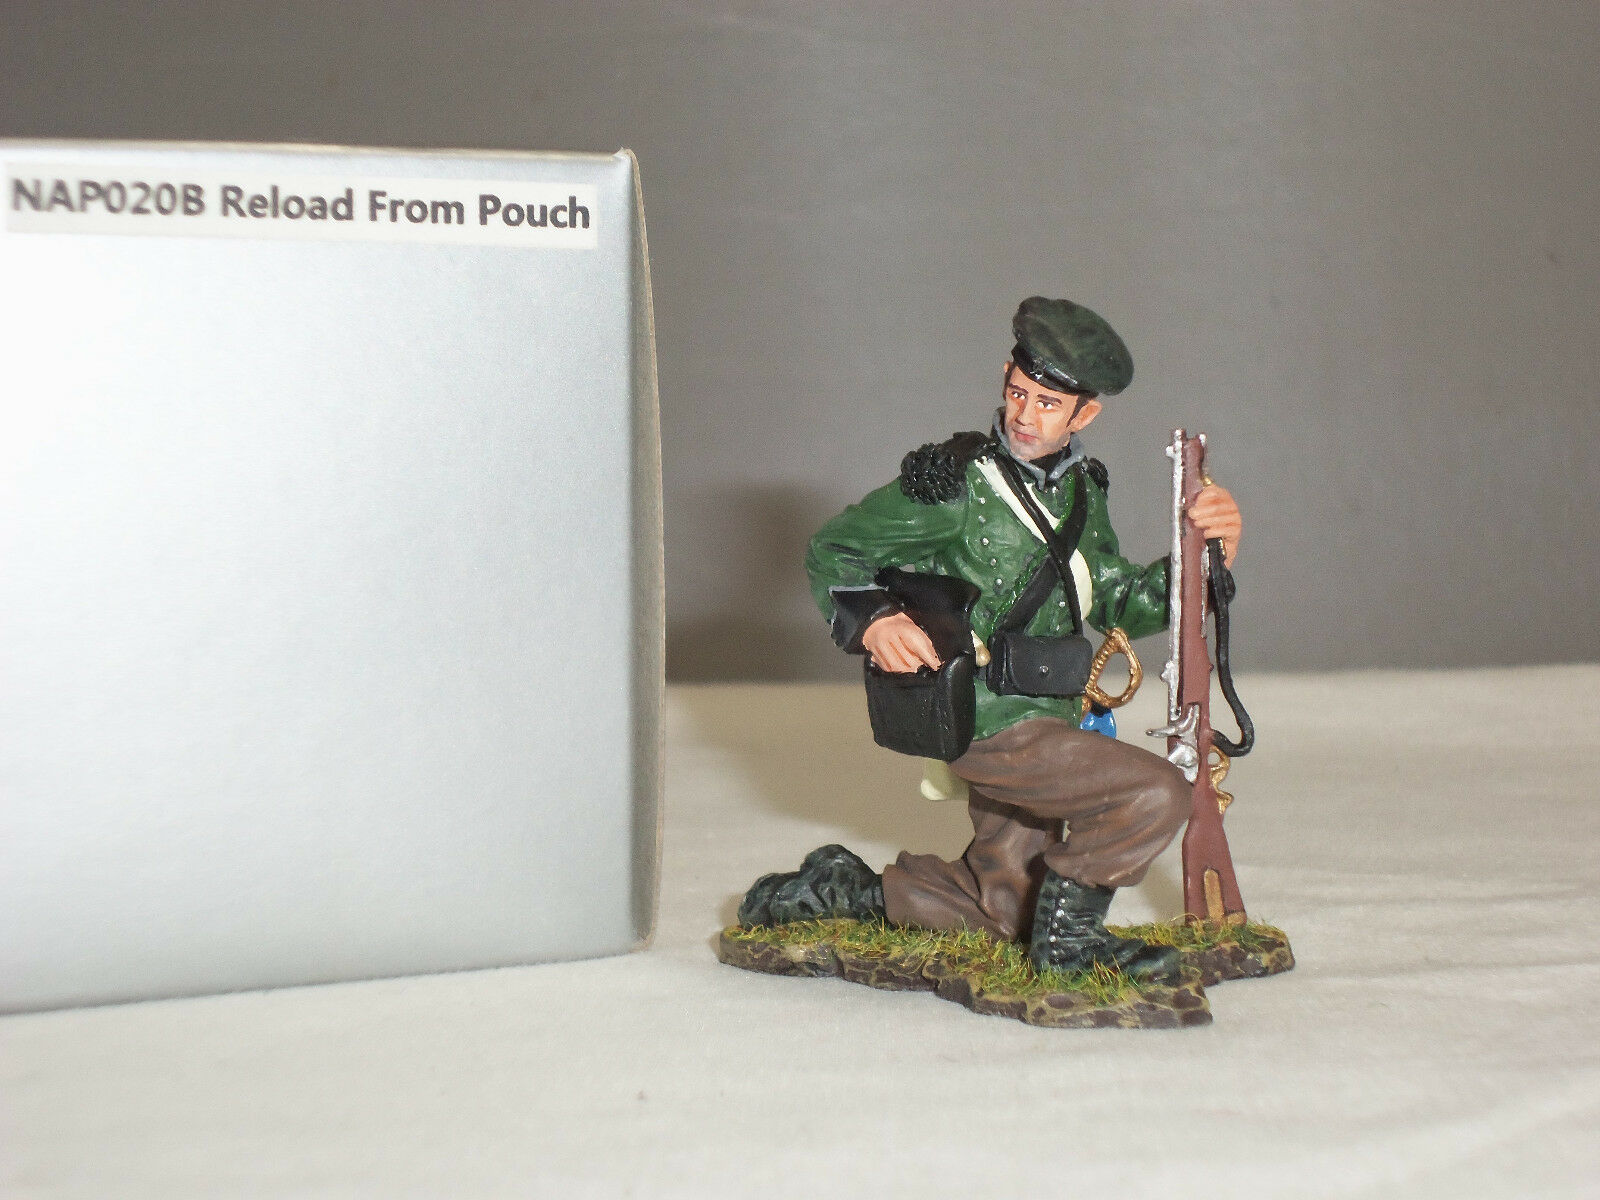 THOMAS GUNN NAP020B BRITISH 95TH RIFLES RELOADING FROM POUCH TOY SOLDIER FIGURE